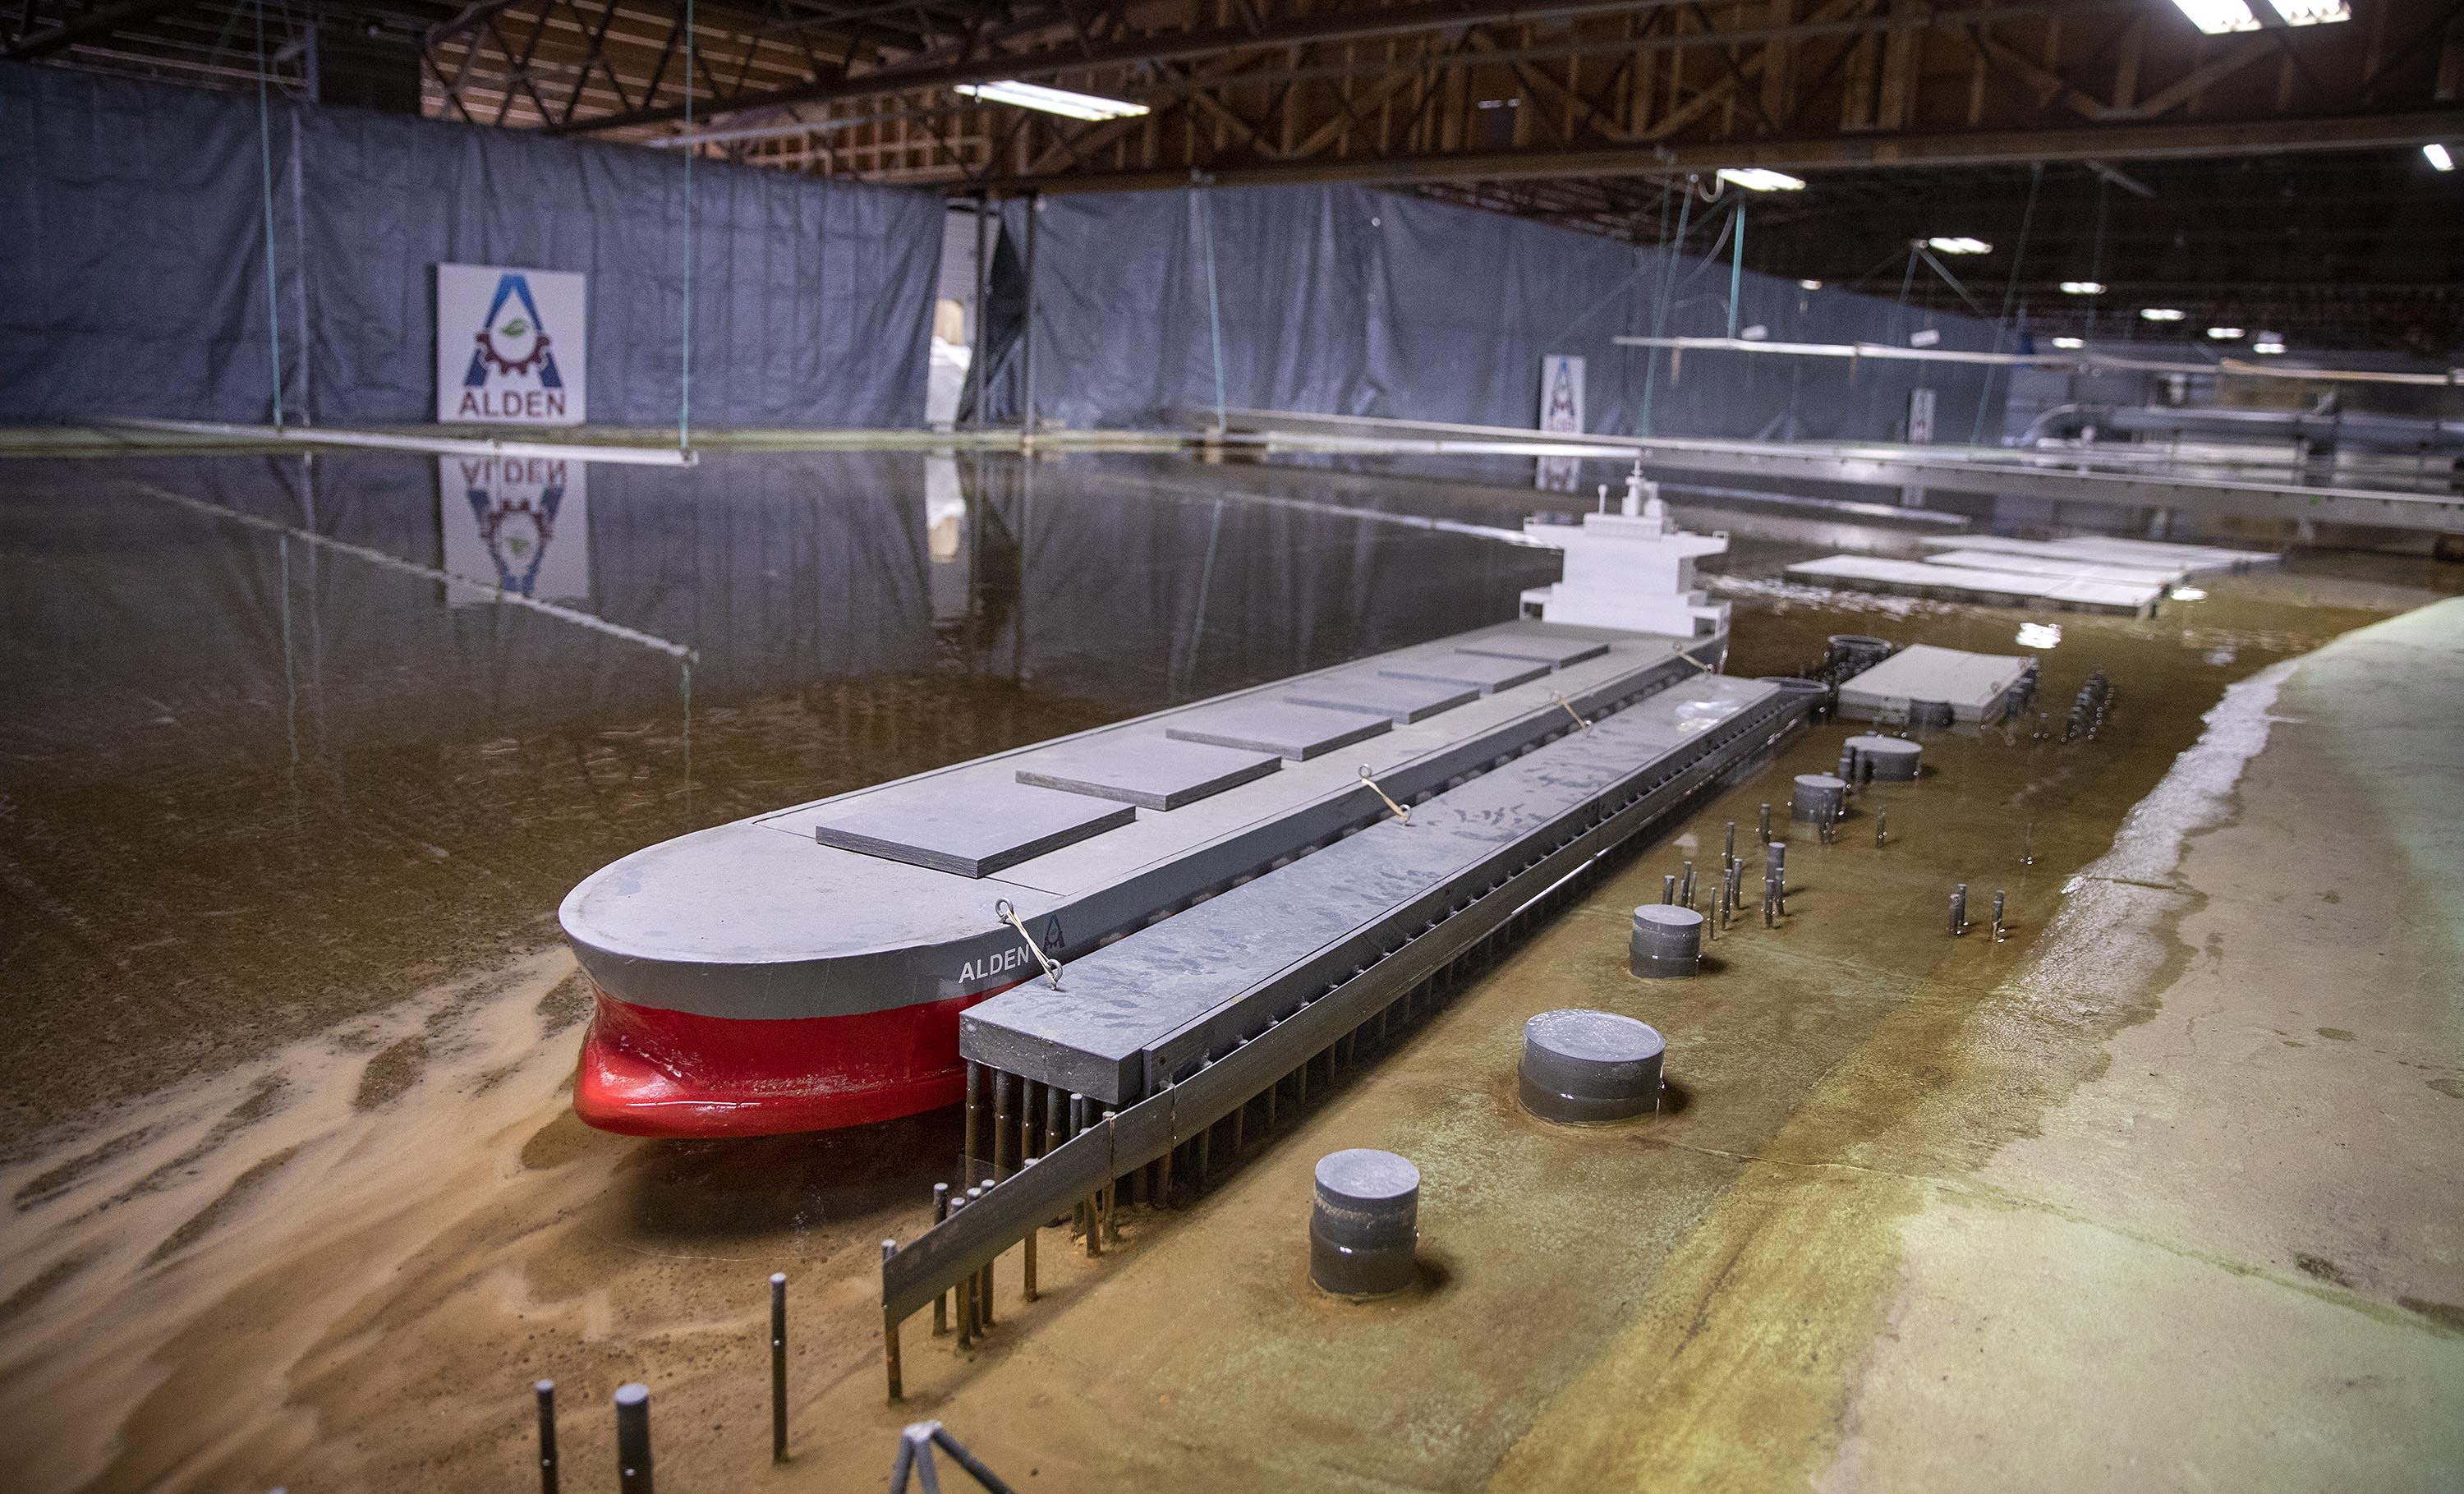 A cargo vessel lies docked on the banks of Alden's 1:65 scale model of a section of the Mississippi River. (Robin Lubbock/WBUR)